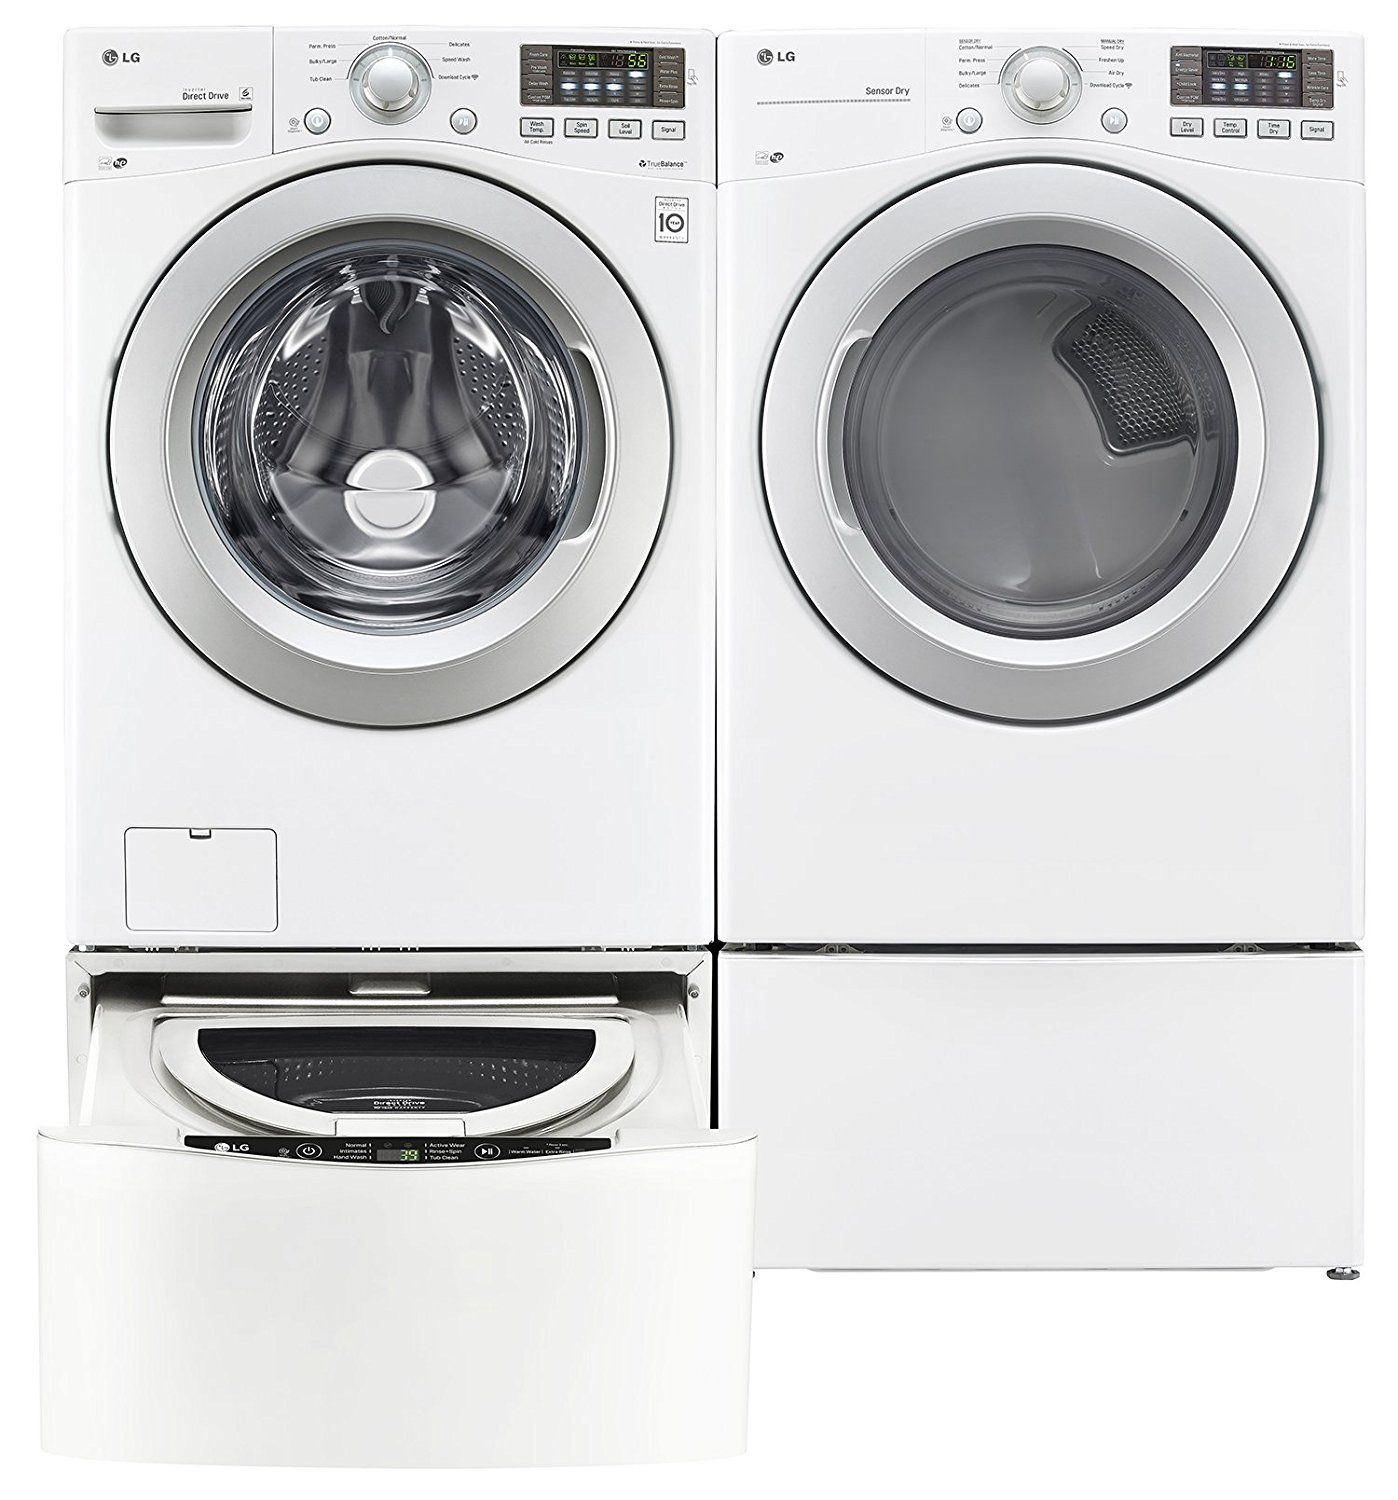 pedestal dryer washer pin appliance laundry electrolux trusted and